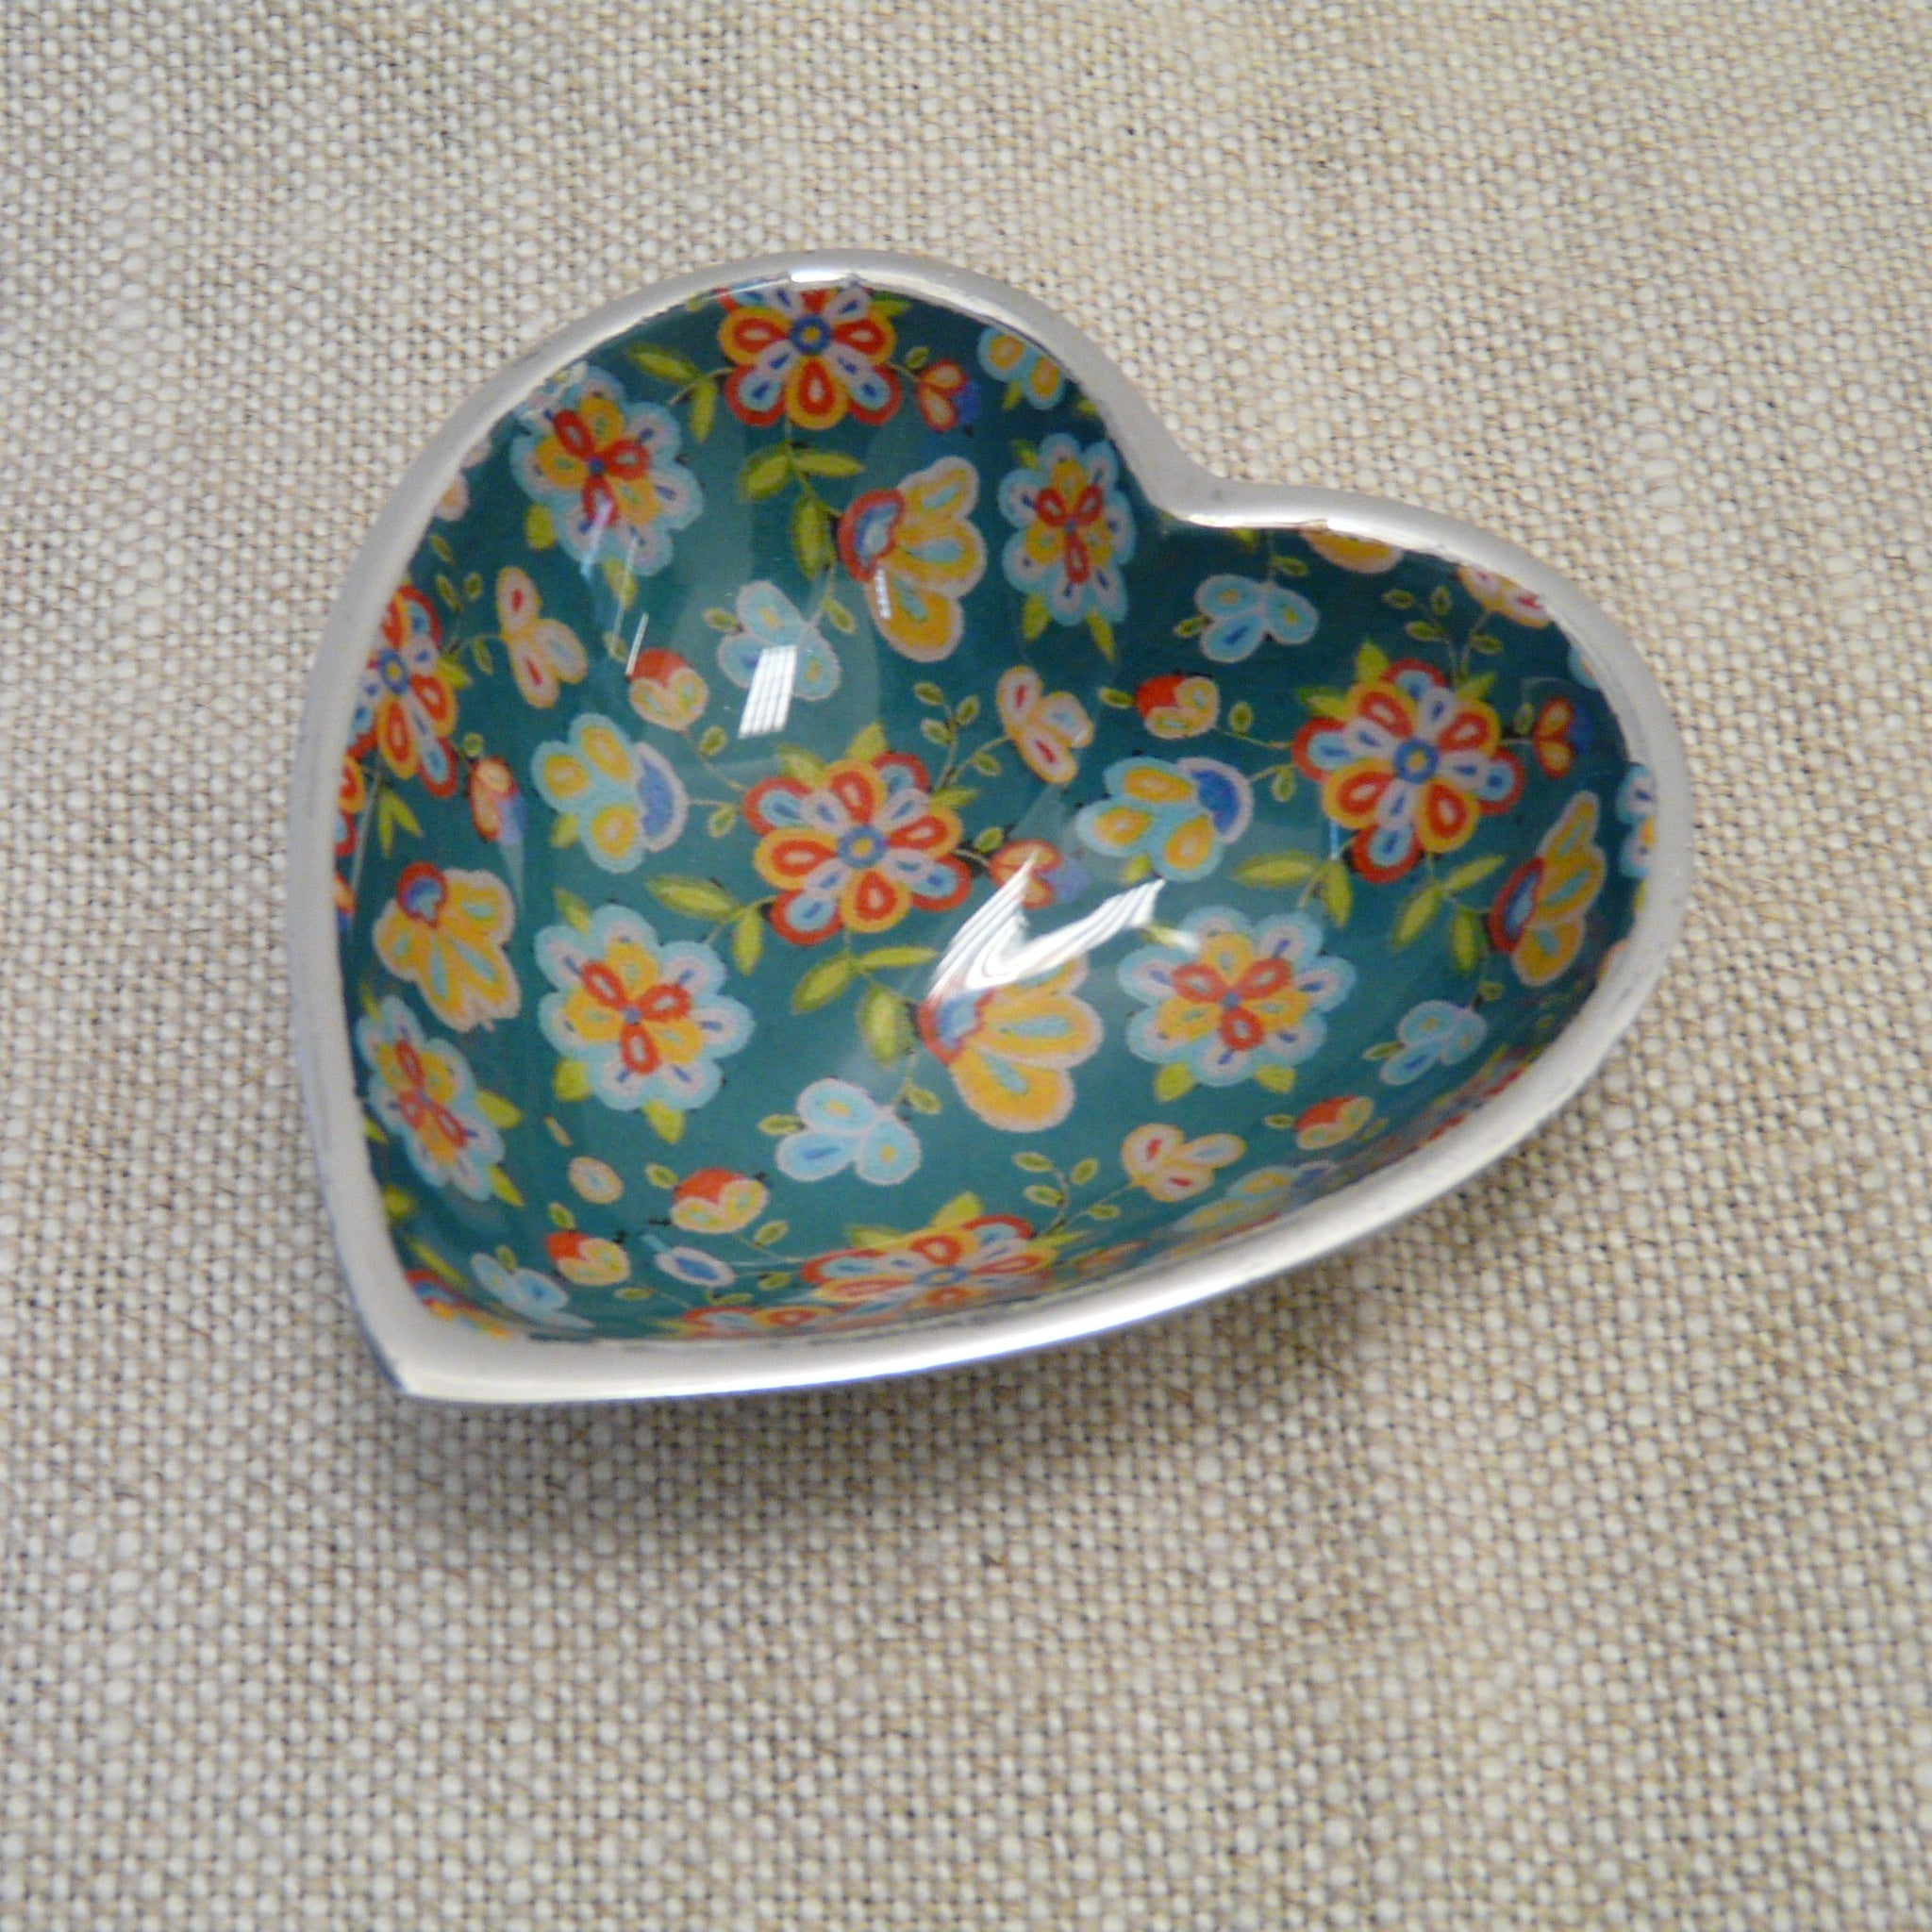 P1110291-Fair-trade-green-flower-heart-dish